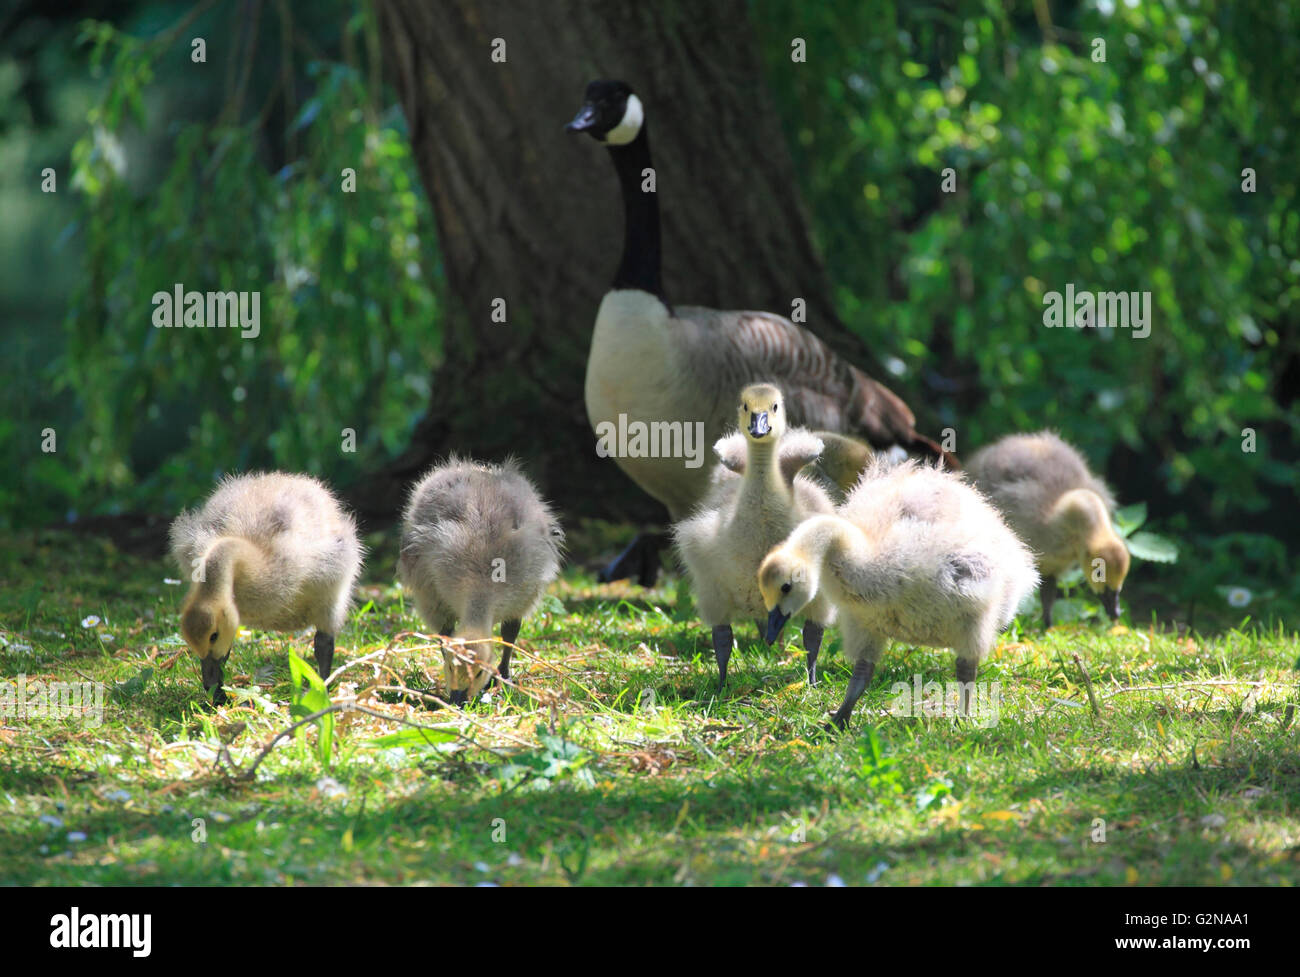 A Cananda Goose  (Branta canadensis) watches over her goslings, Kidderminster, Worcestershire, England, Europe - Stock Image